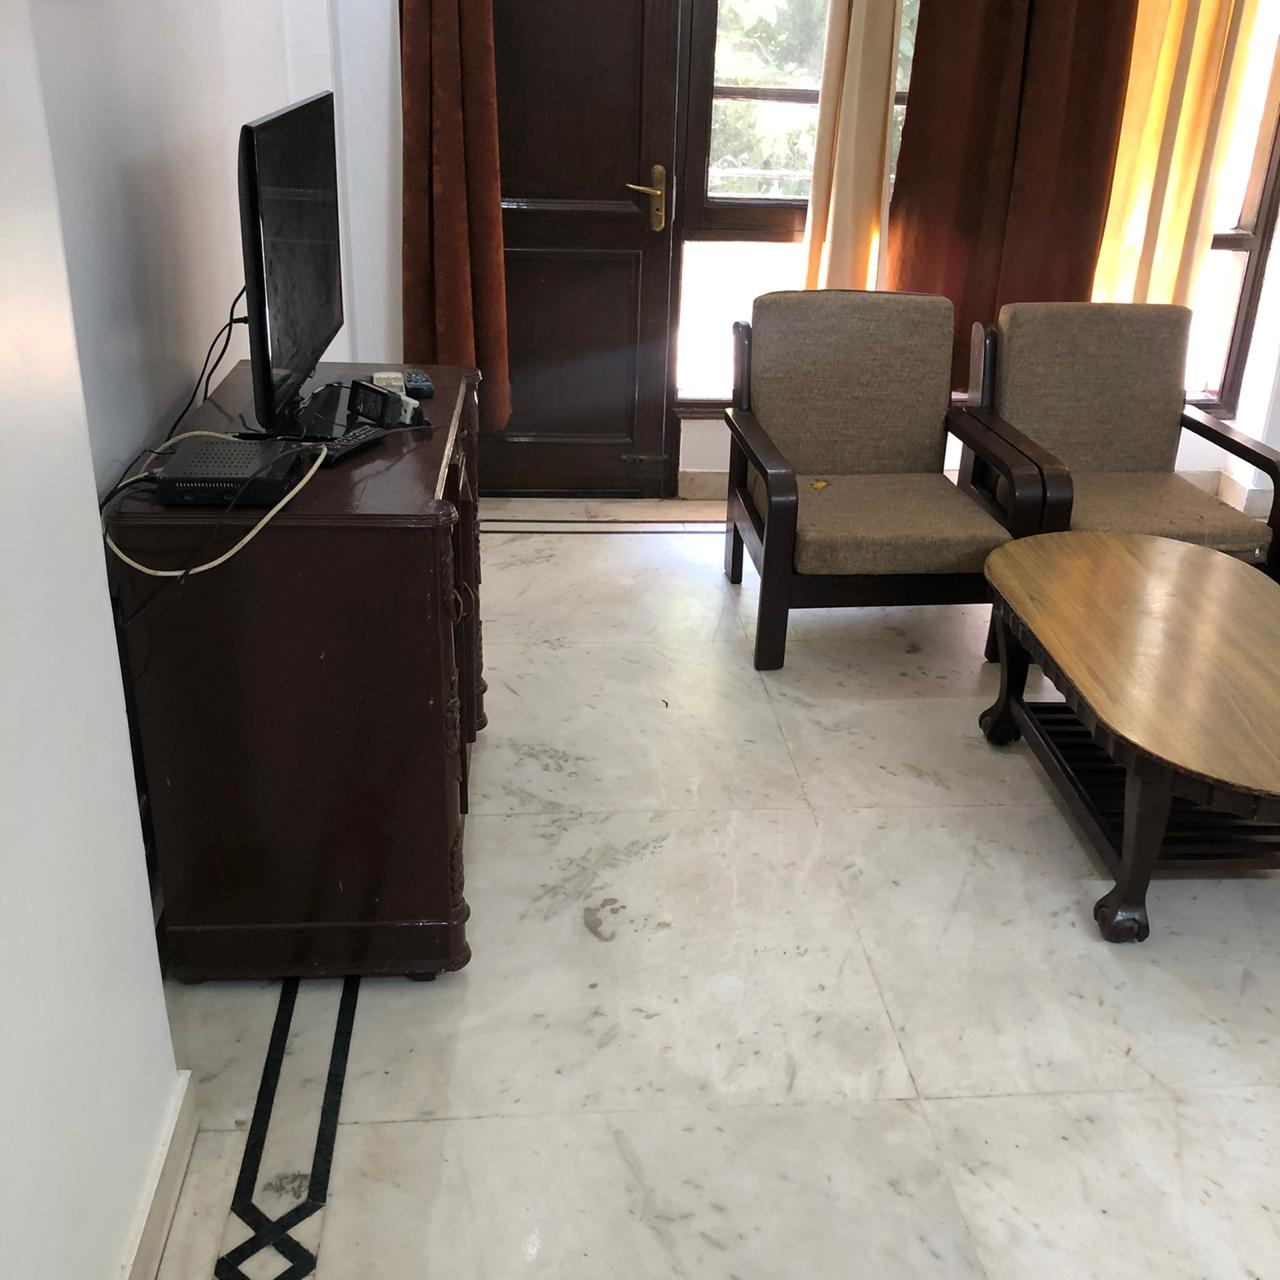 3 BHK + Servant Room  Apartment For Rent in DLF Phase I